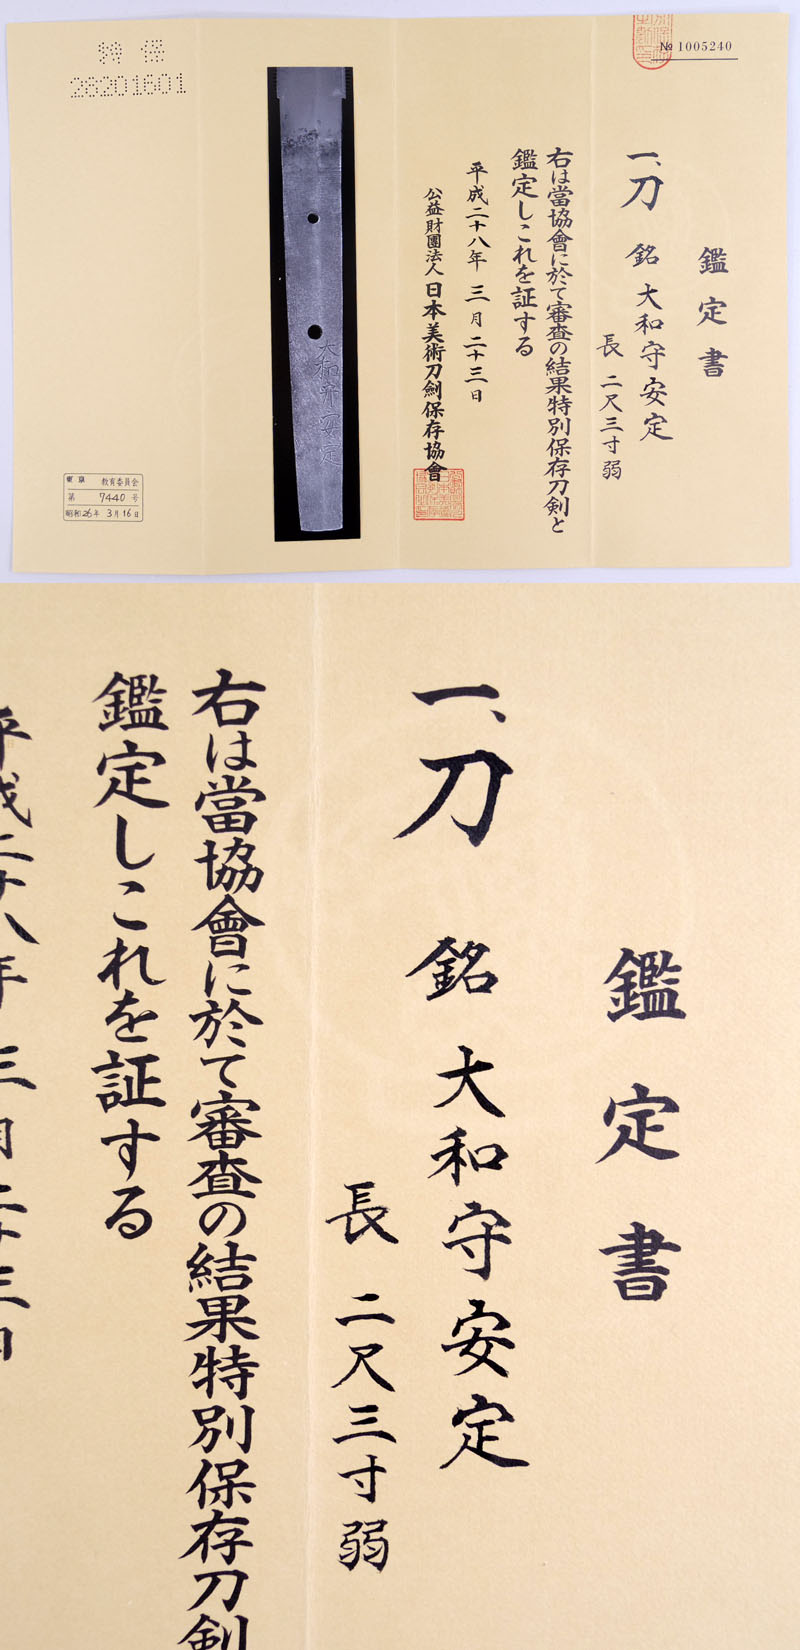 大和守安定 Picture of Certificate